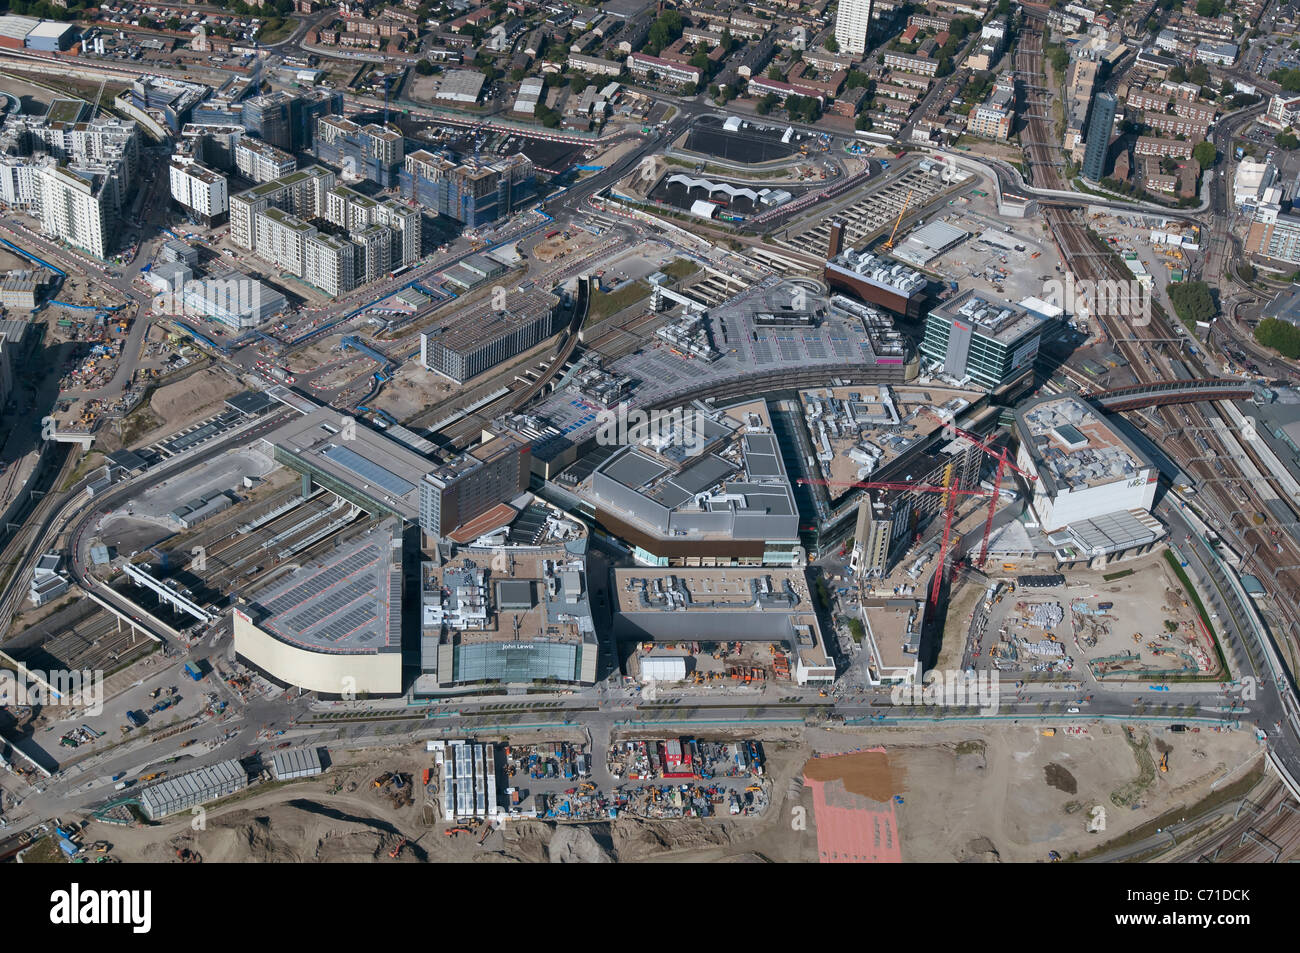 Westfield shopping centre in Stratford - Stock Image